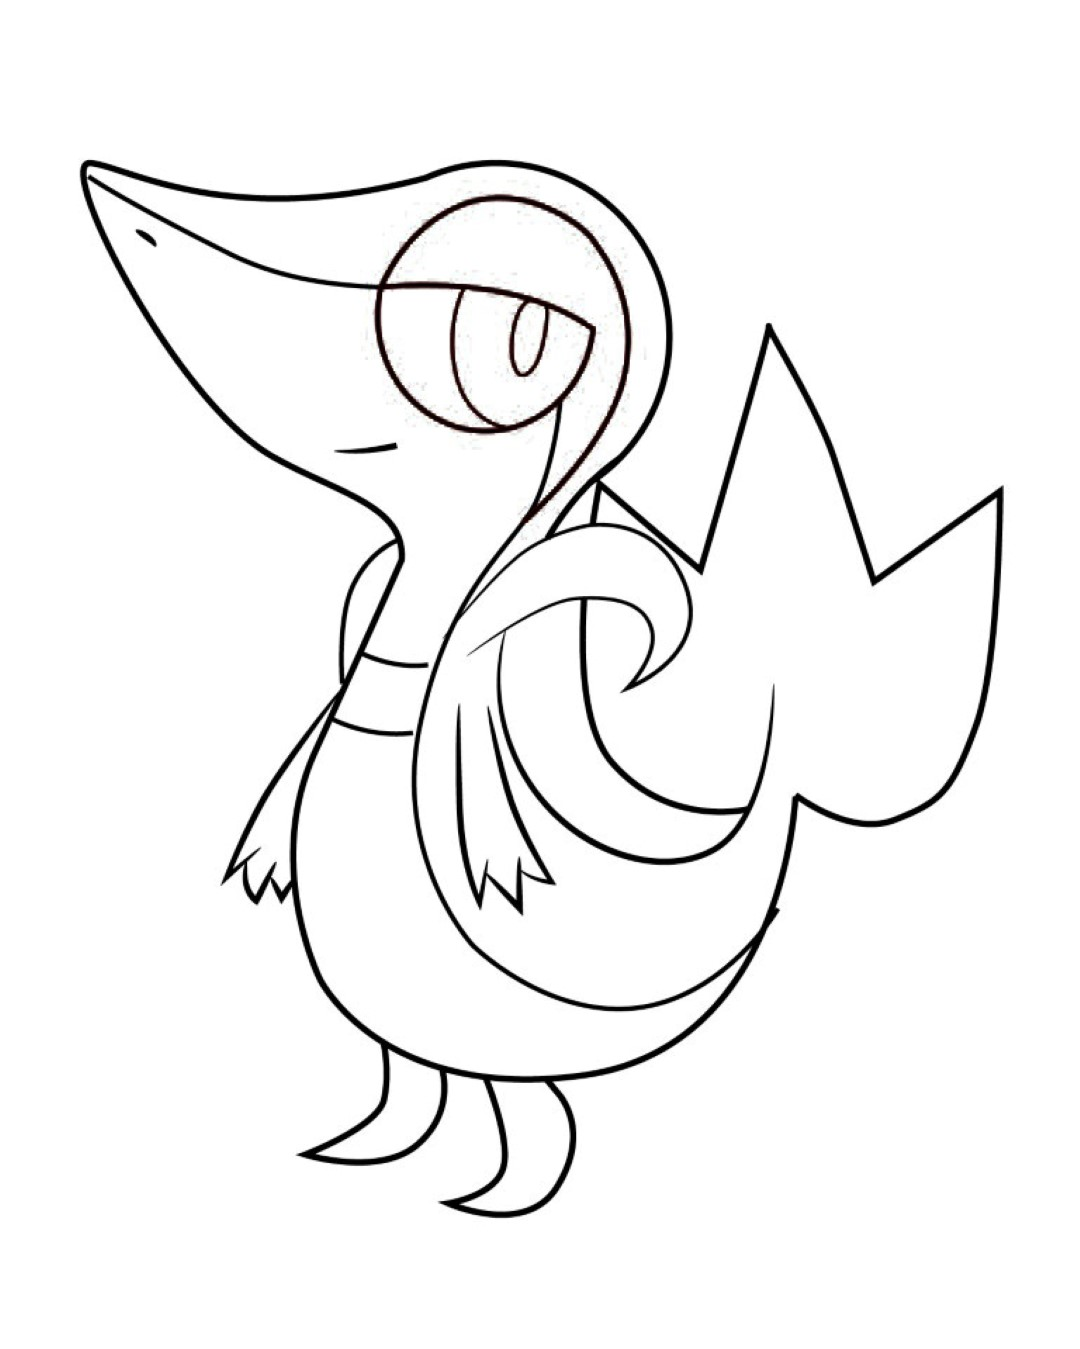 coloring pages pokemon snivy plays - photo#7